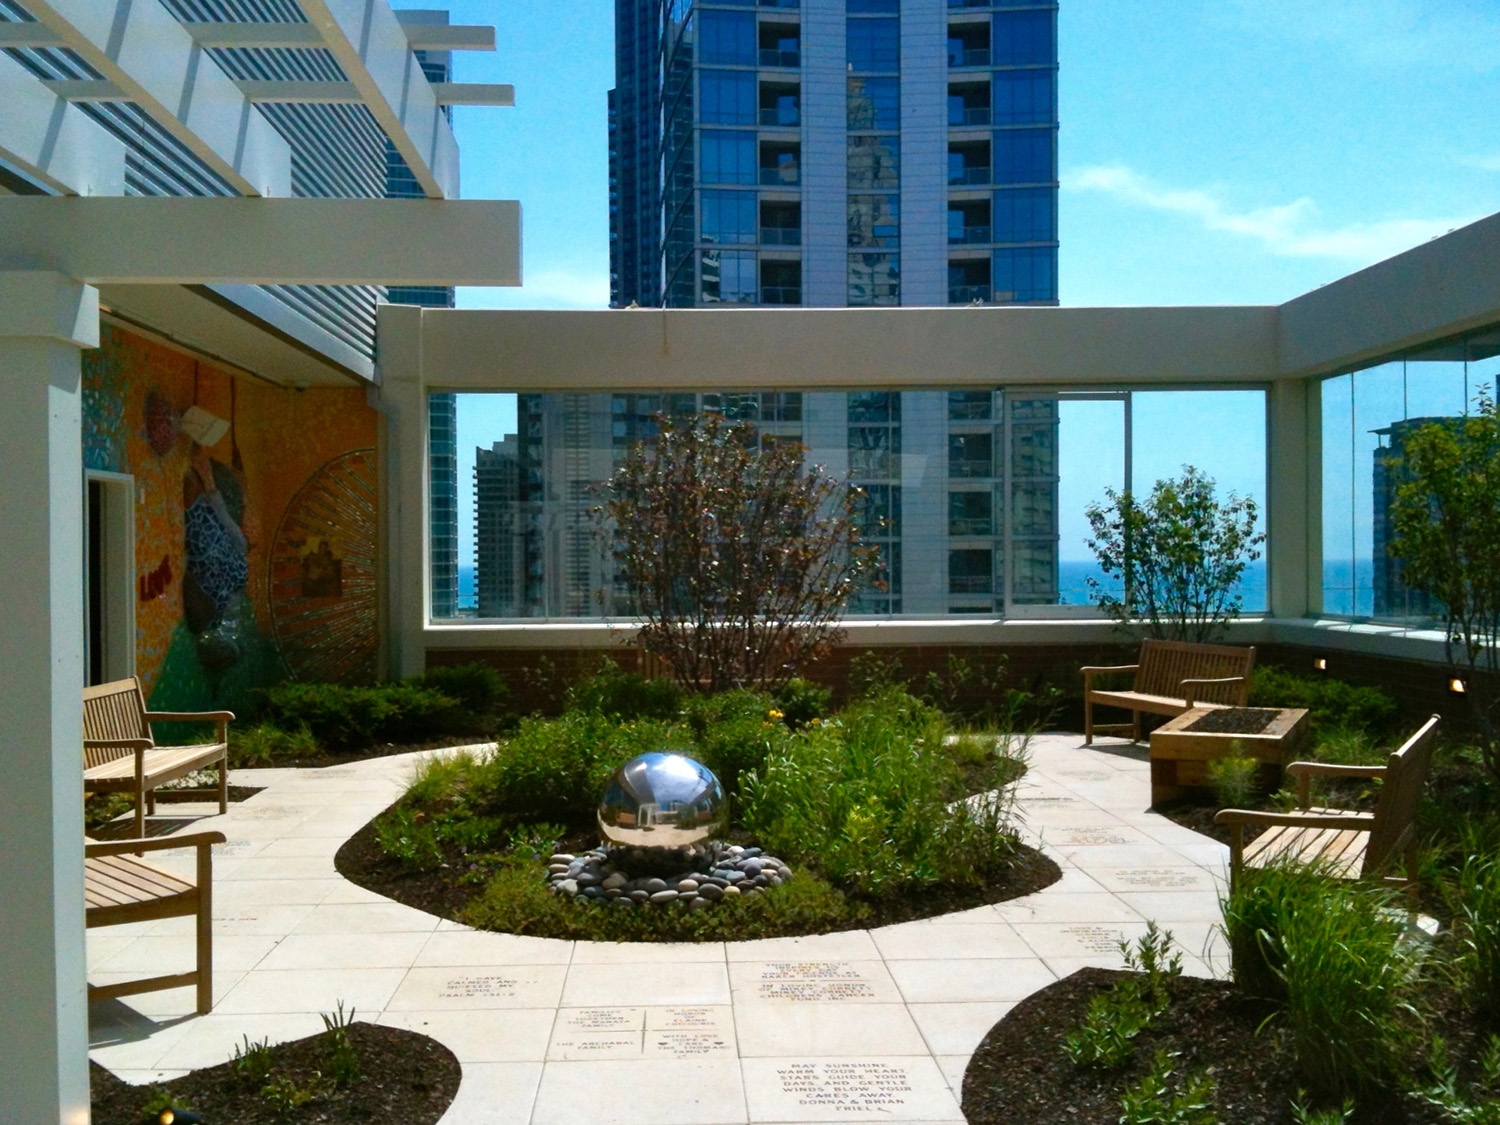 The roof garden of the Ronald McDonald House